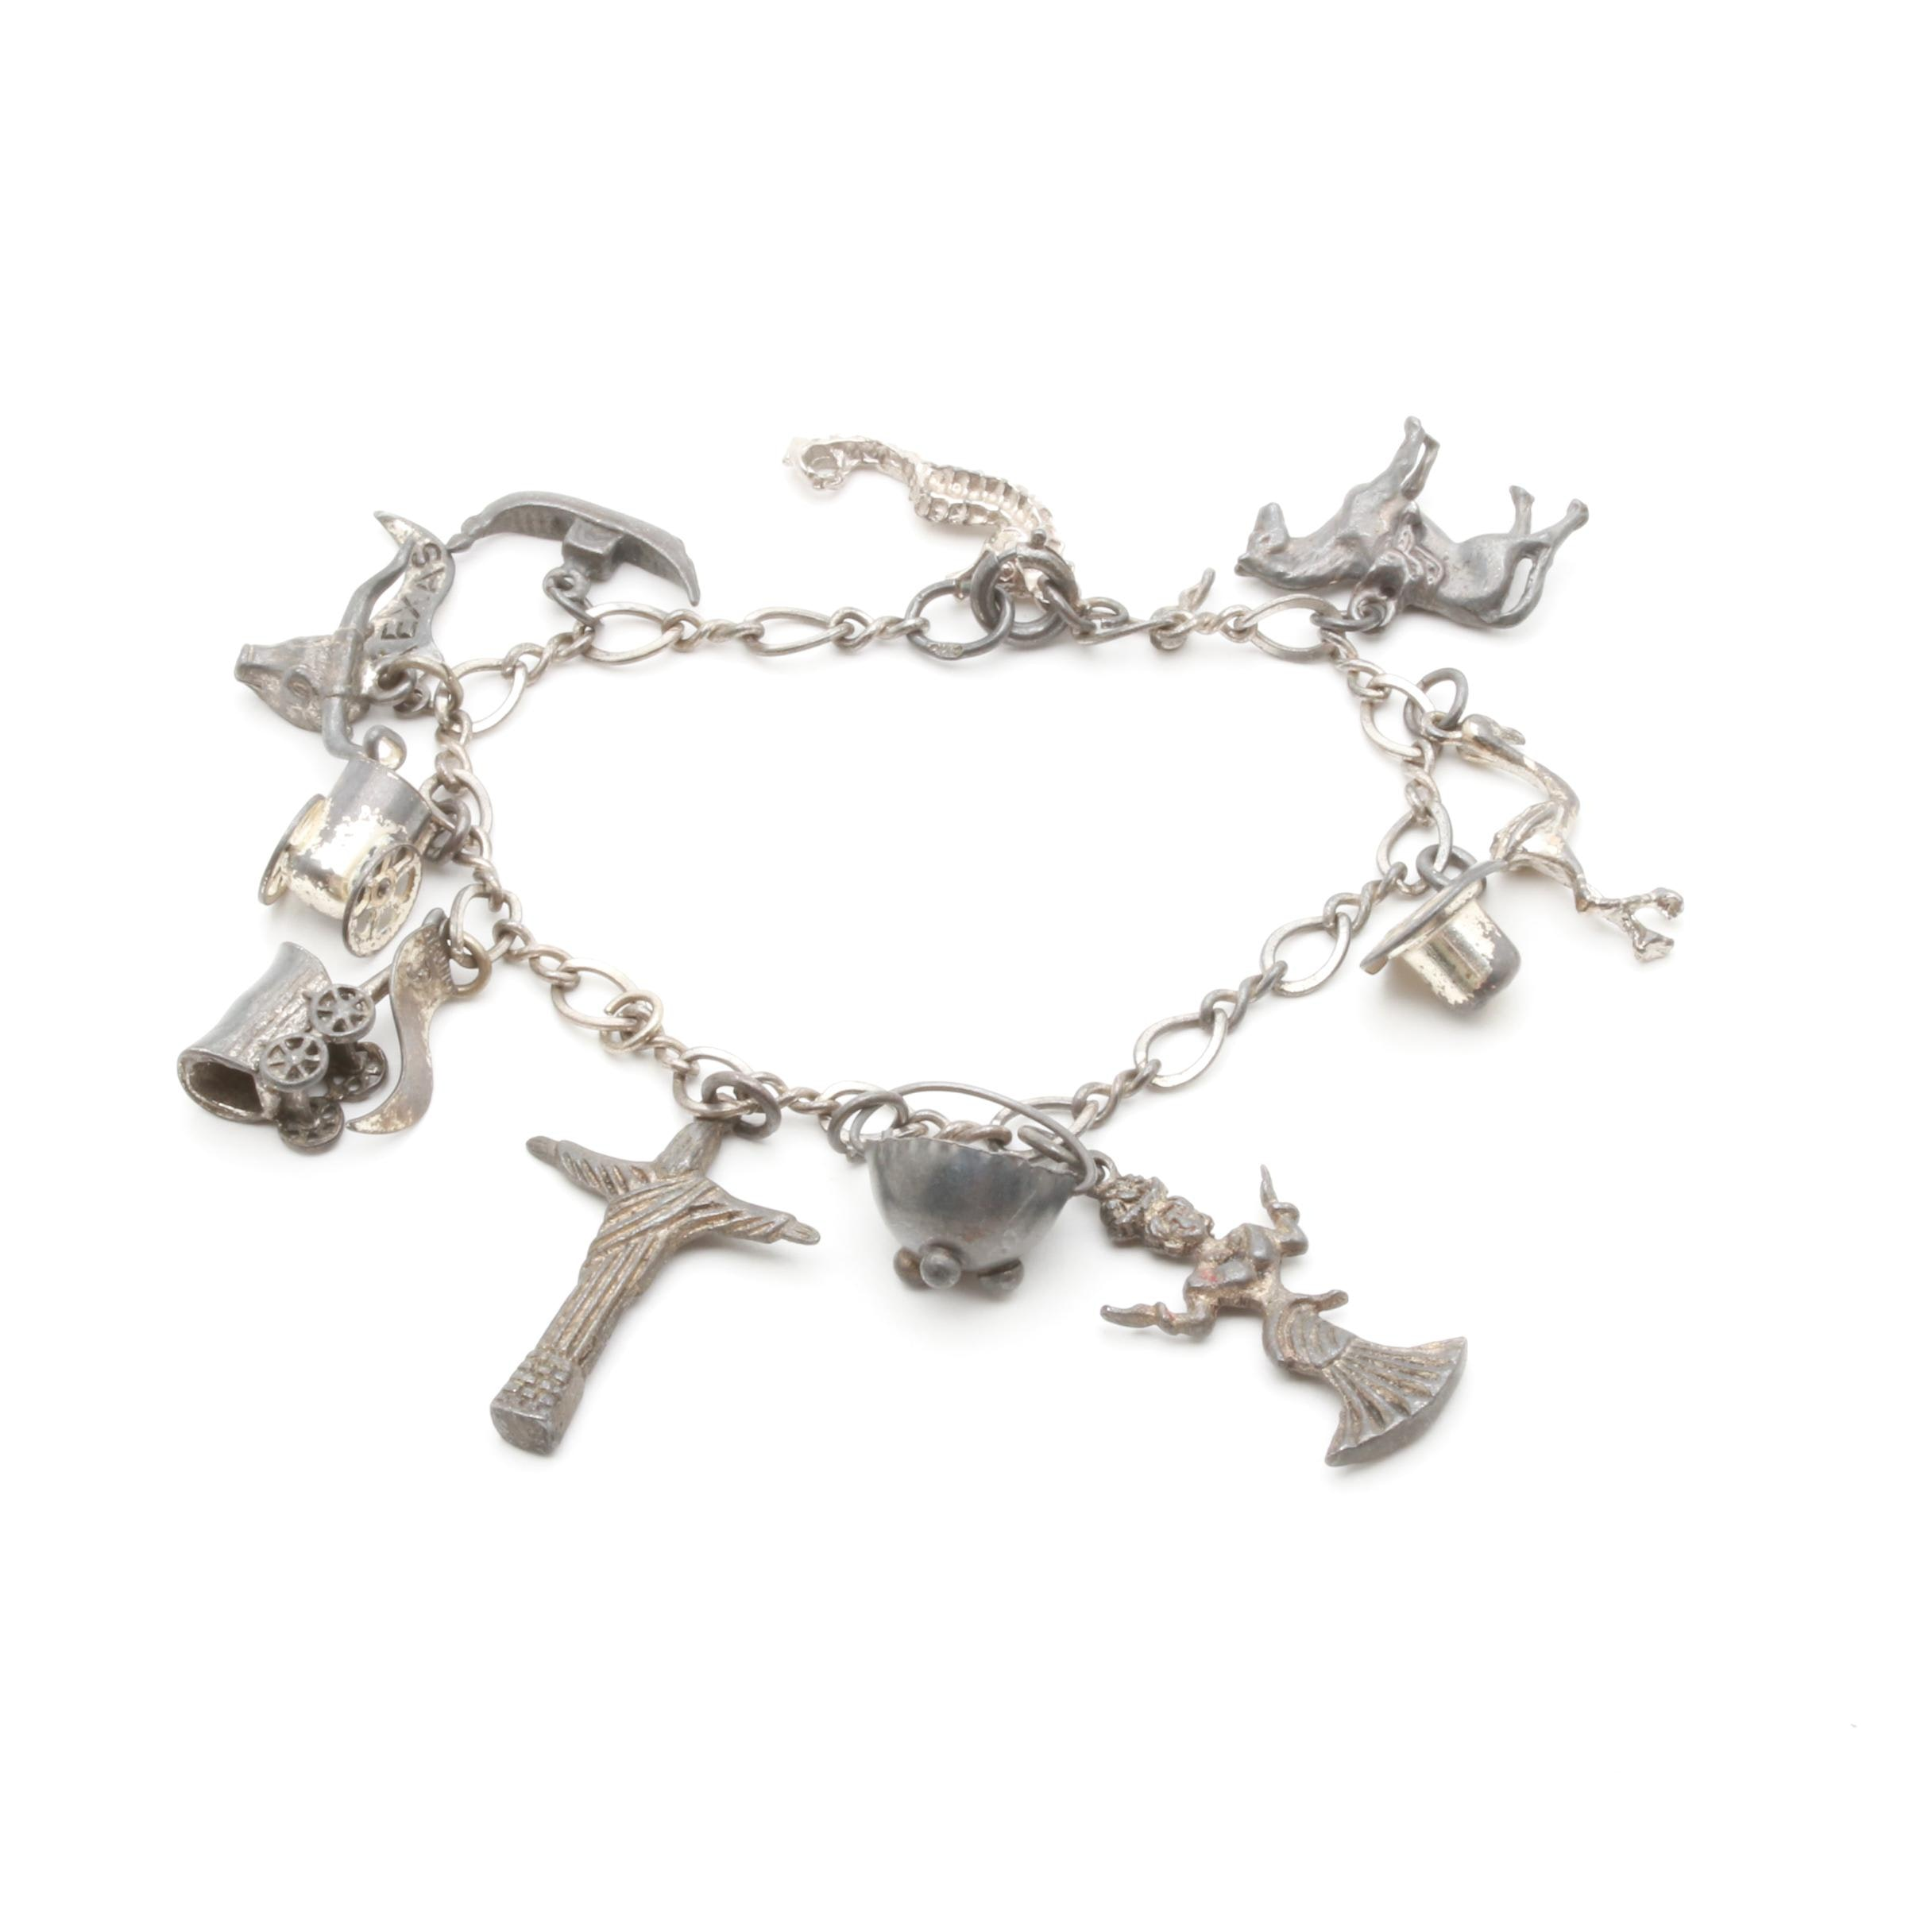 800 and Sterling Silver Charm Bracelet